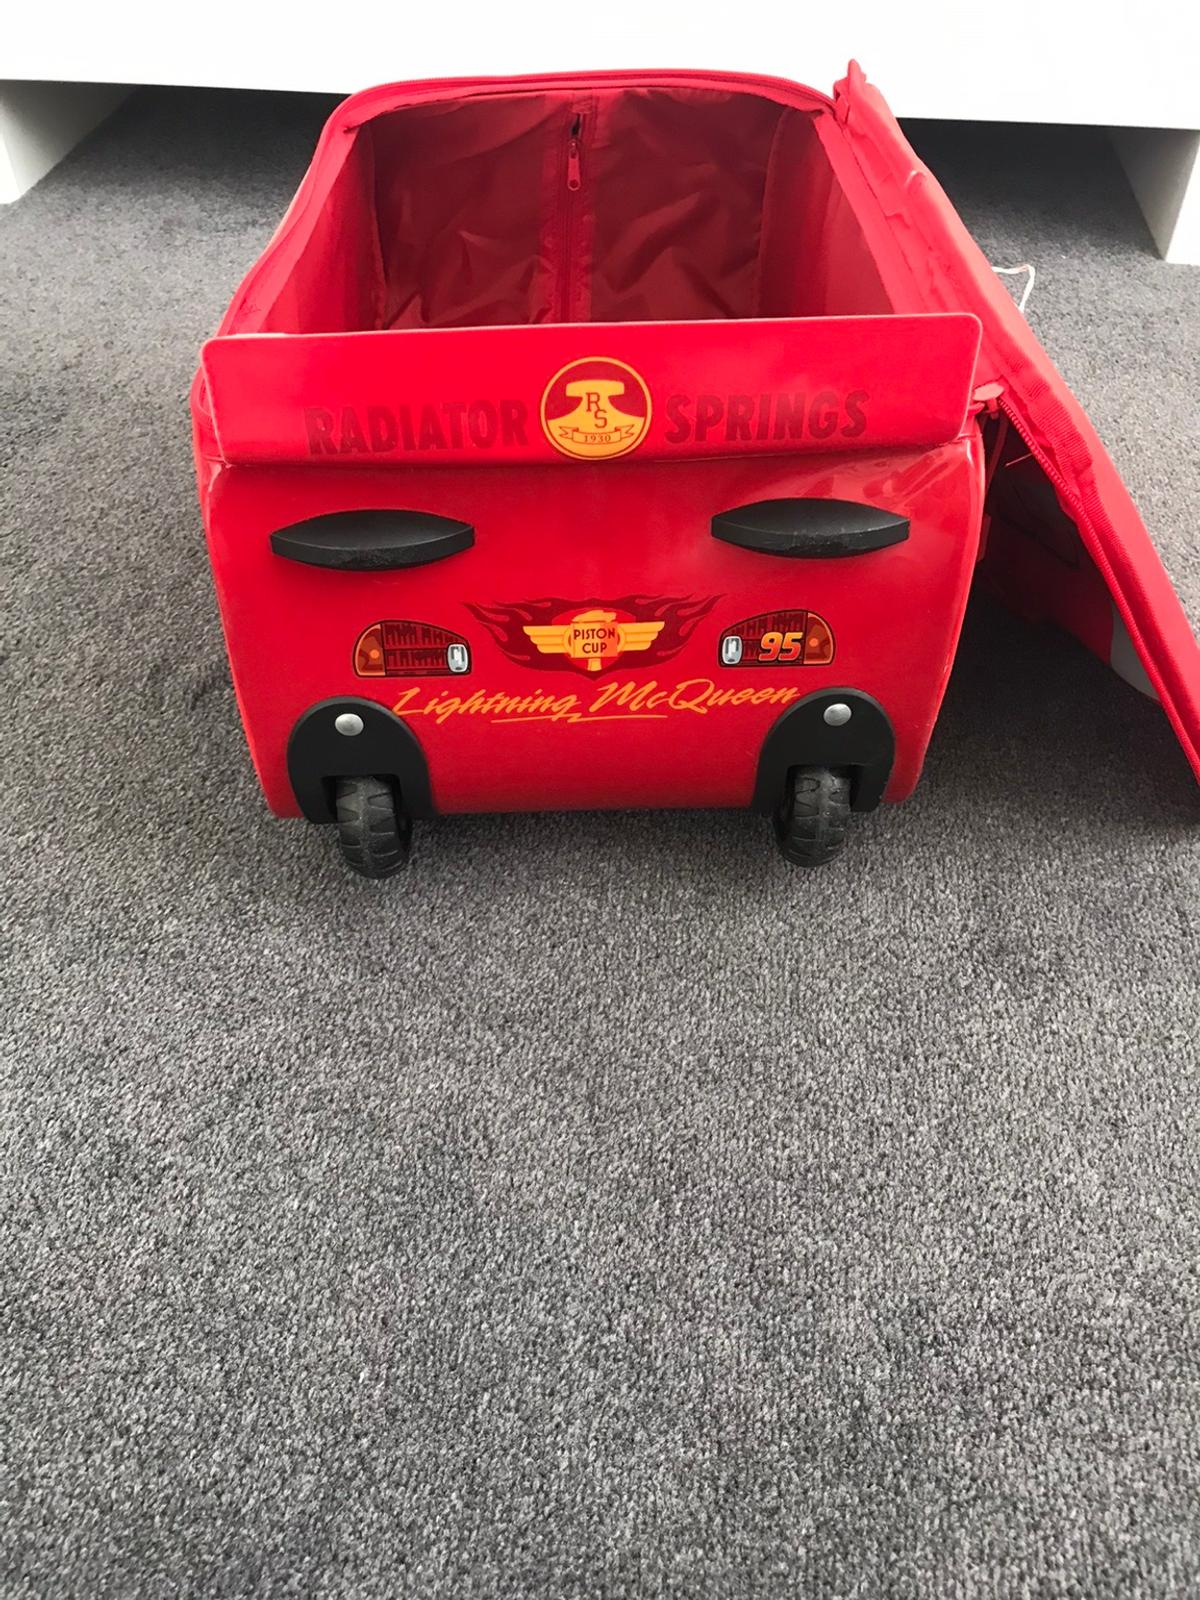 Disney's lightening McQueen rolling case, lovely condition only used twice